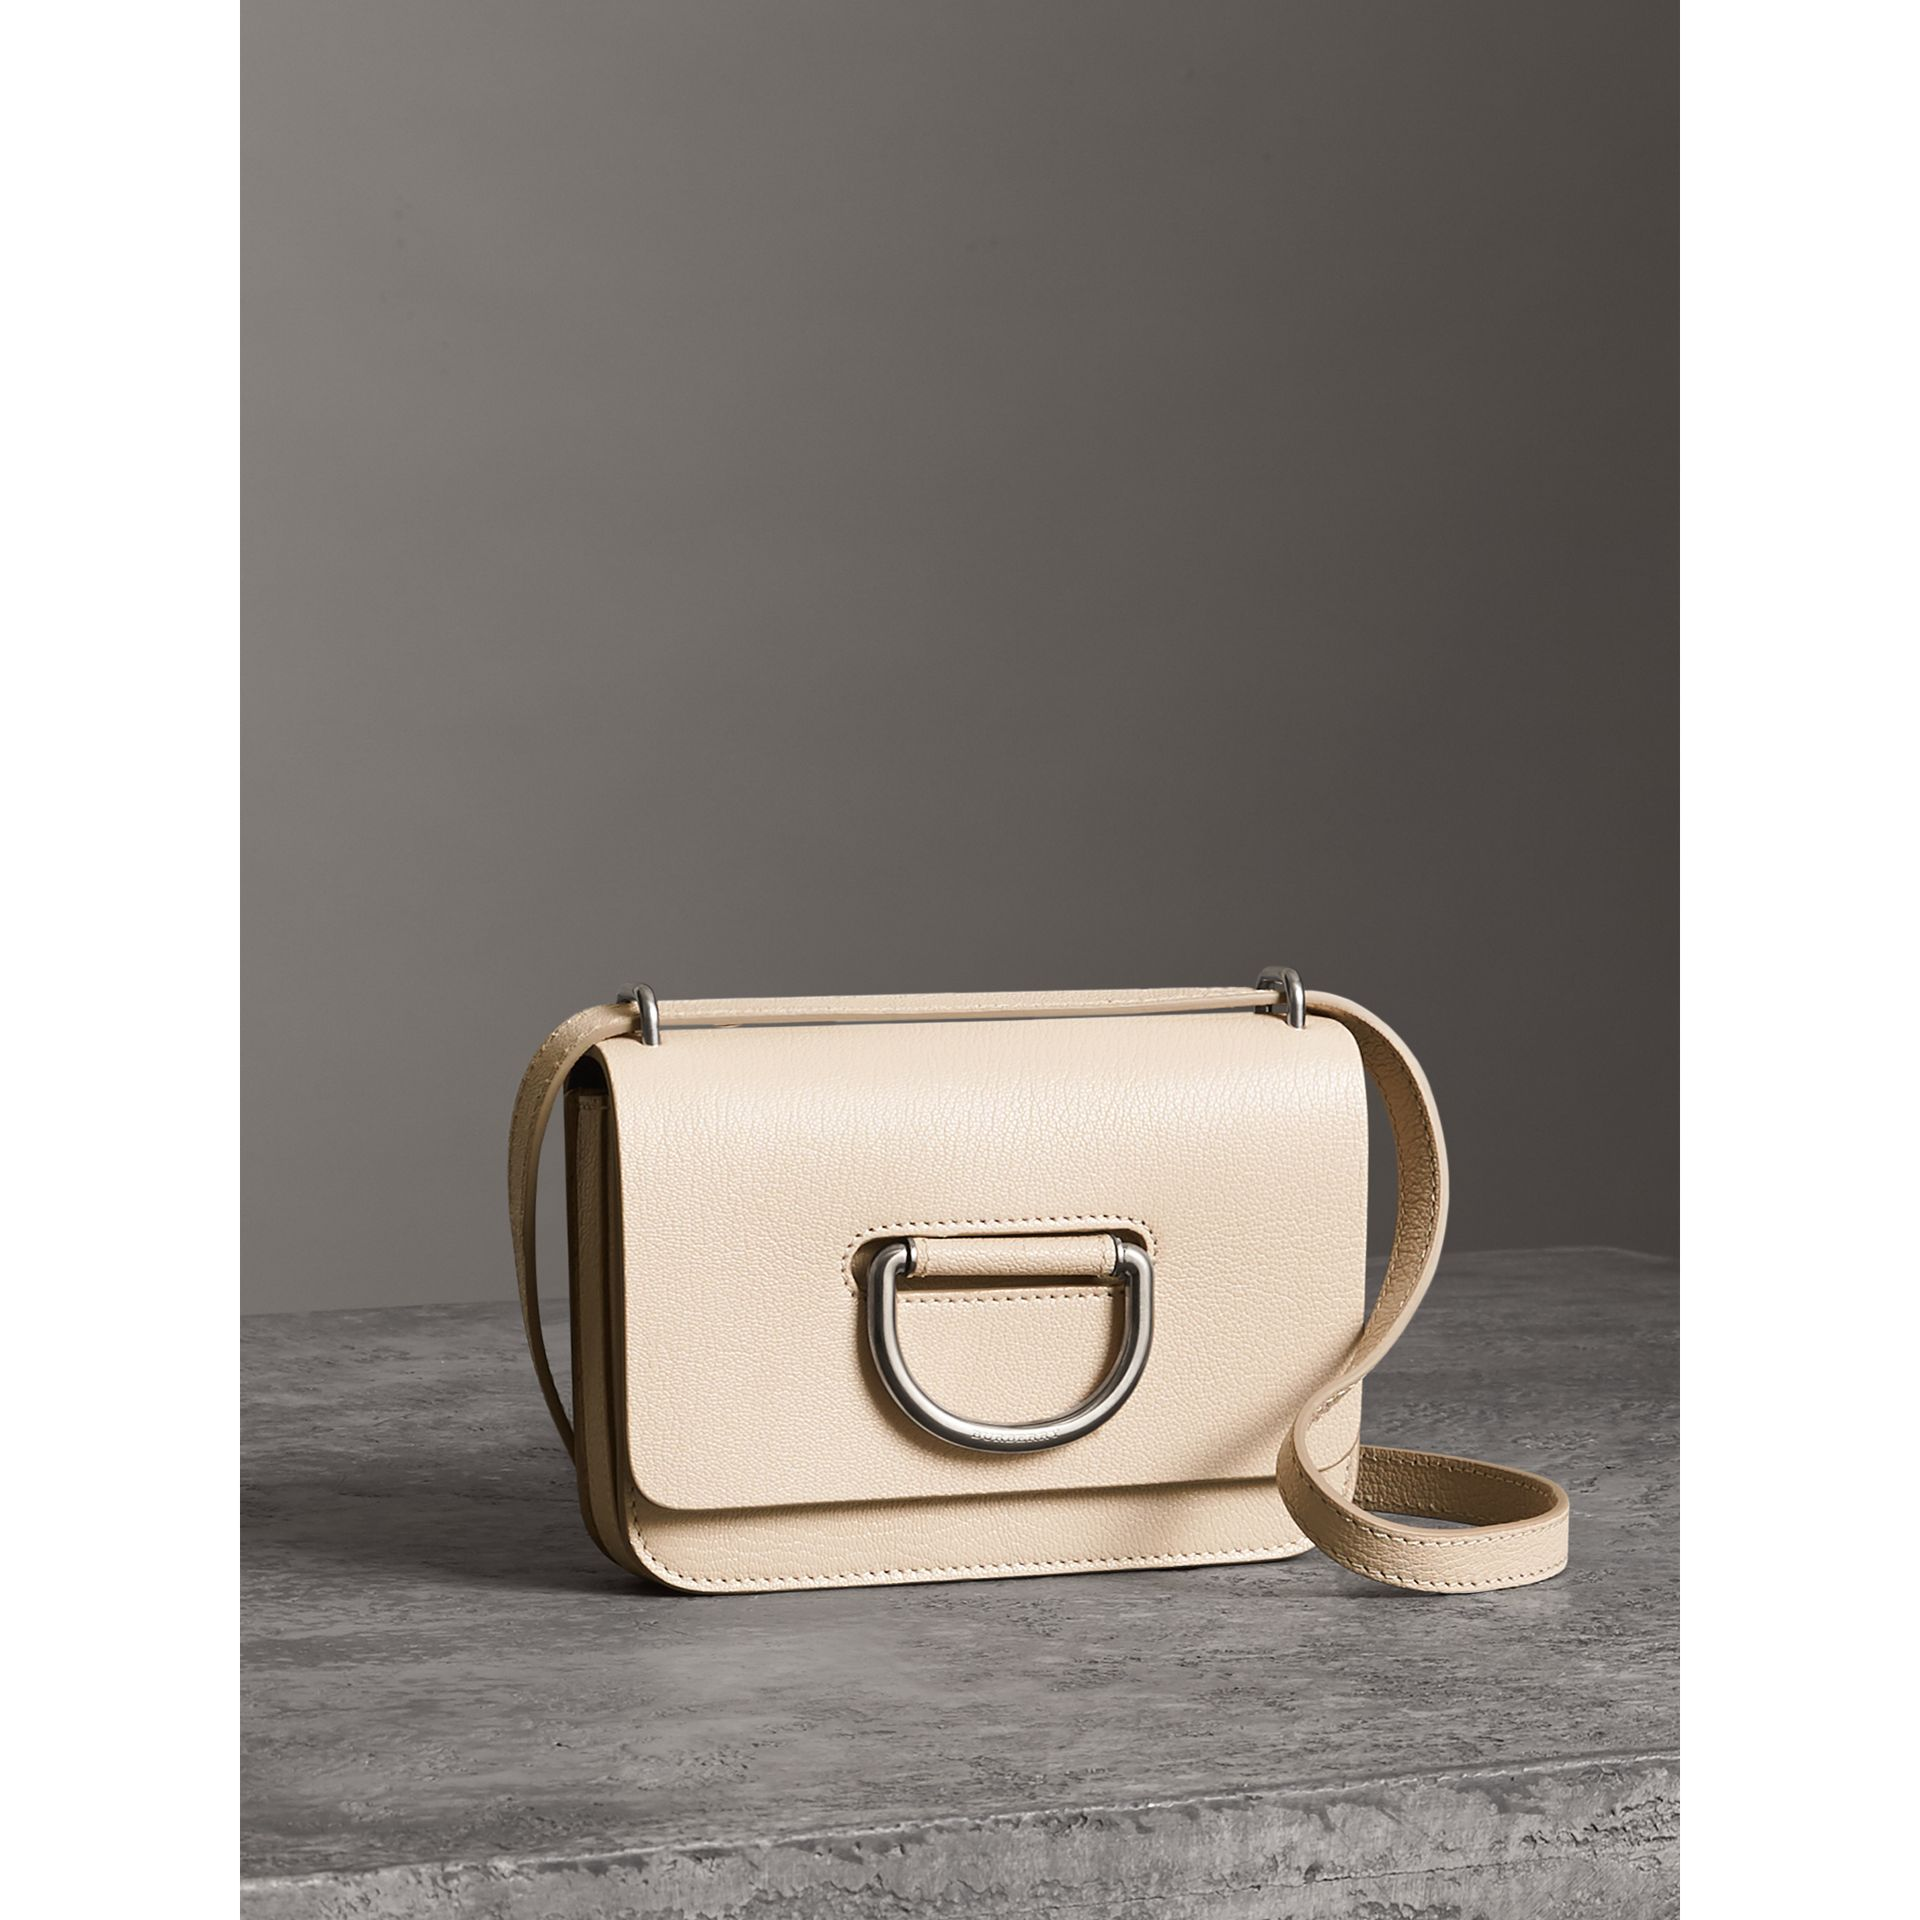 Mini sac The D-ring en cuir (Stone) - Femme | Burberry Canada - photo de la galerie 6